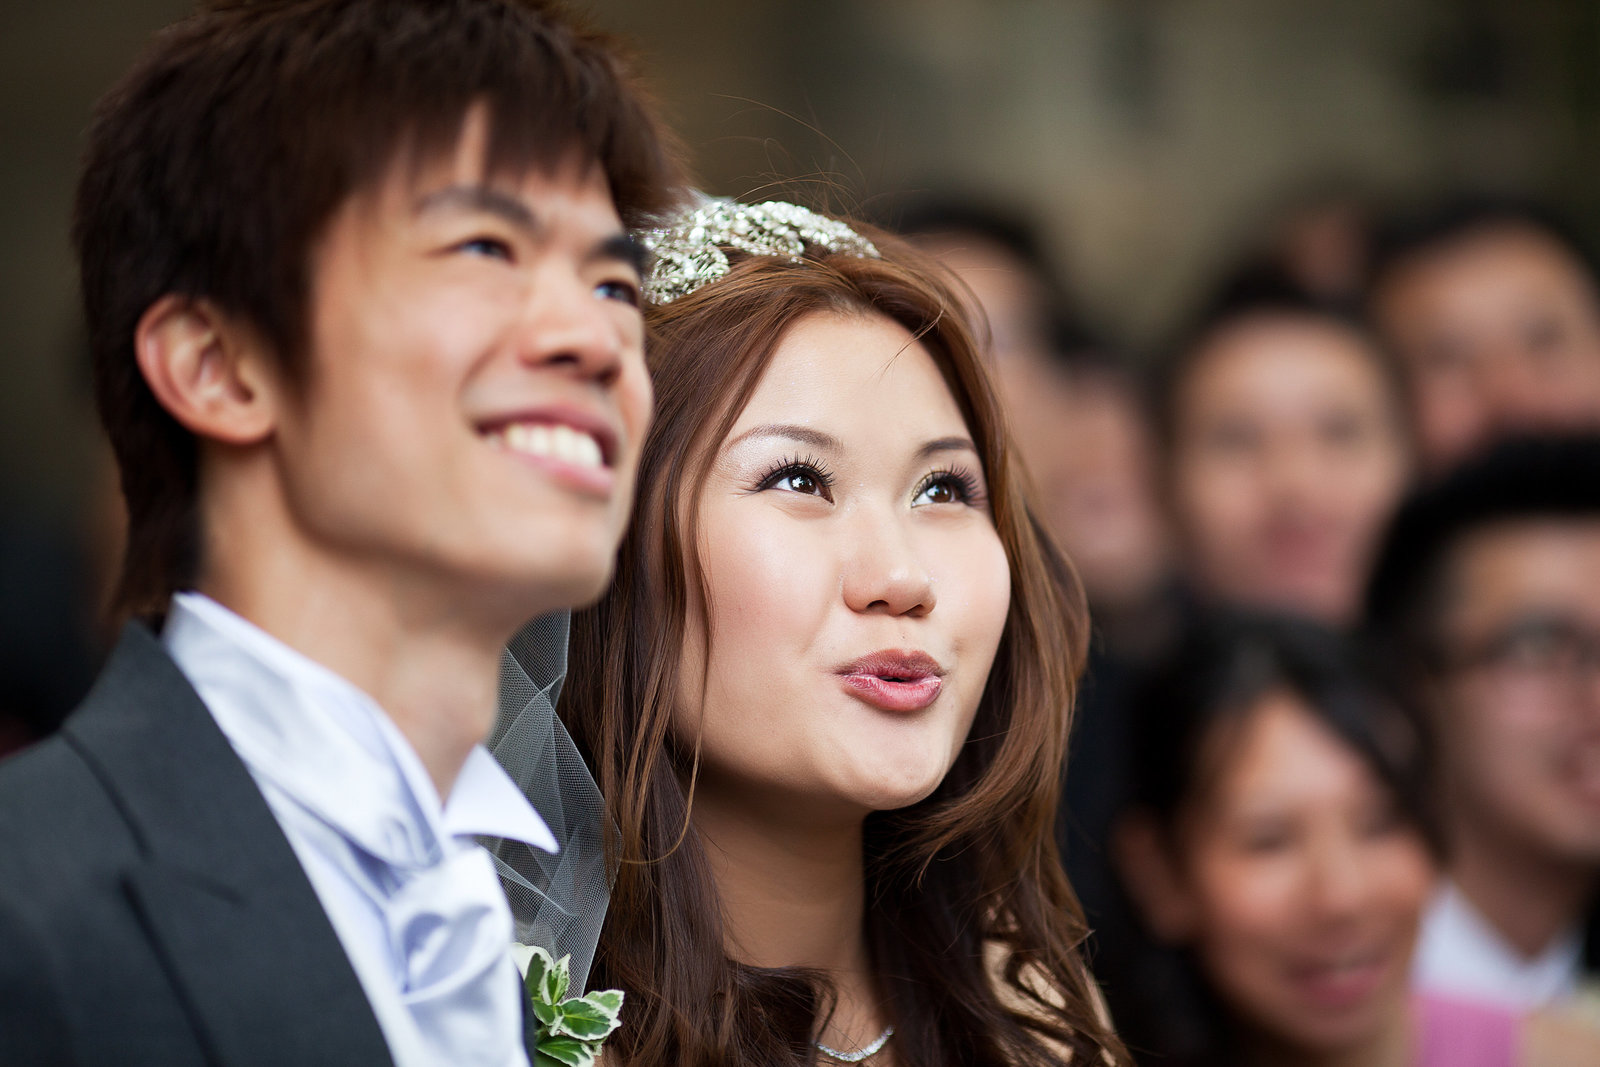 adorlee-002-wedding-photographer-chichester-west-sussex